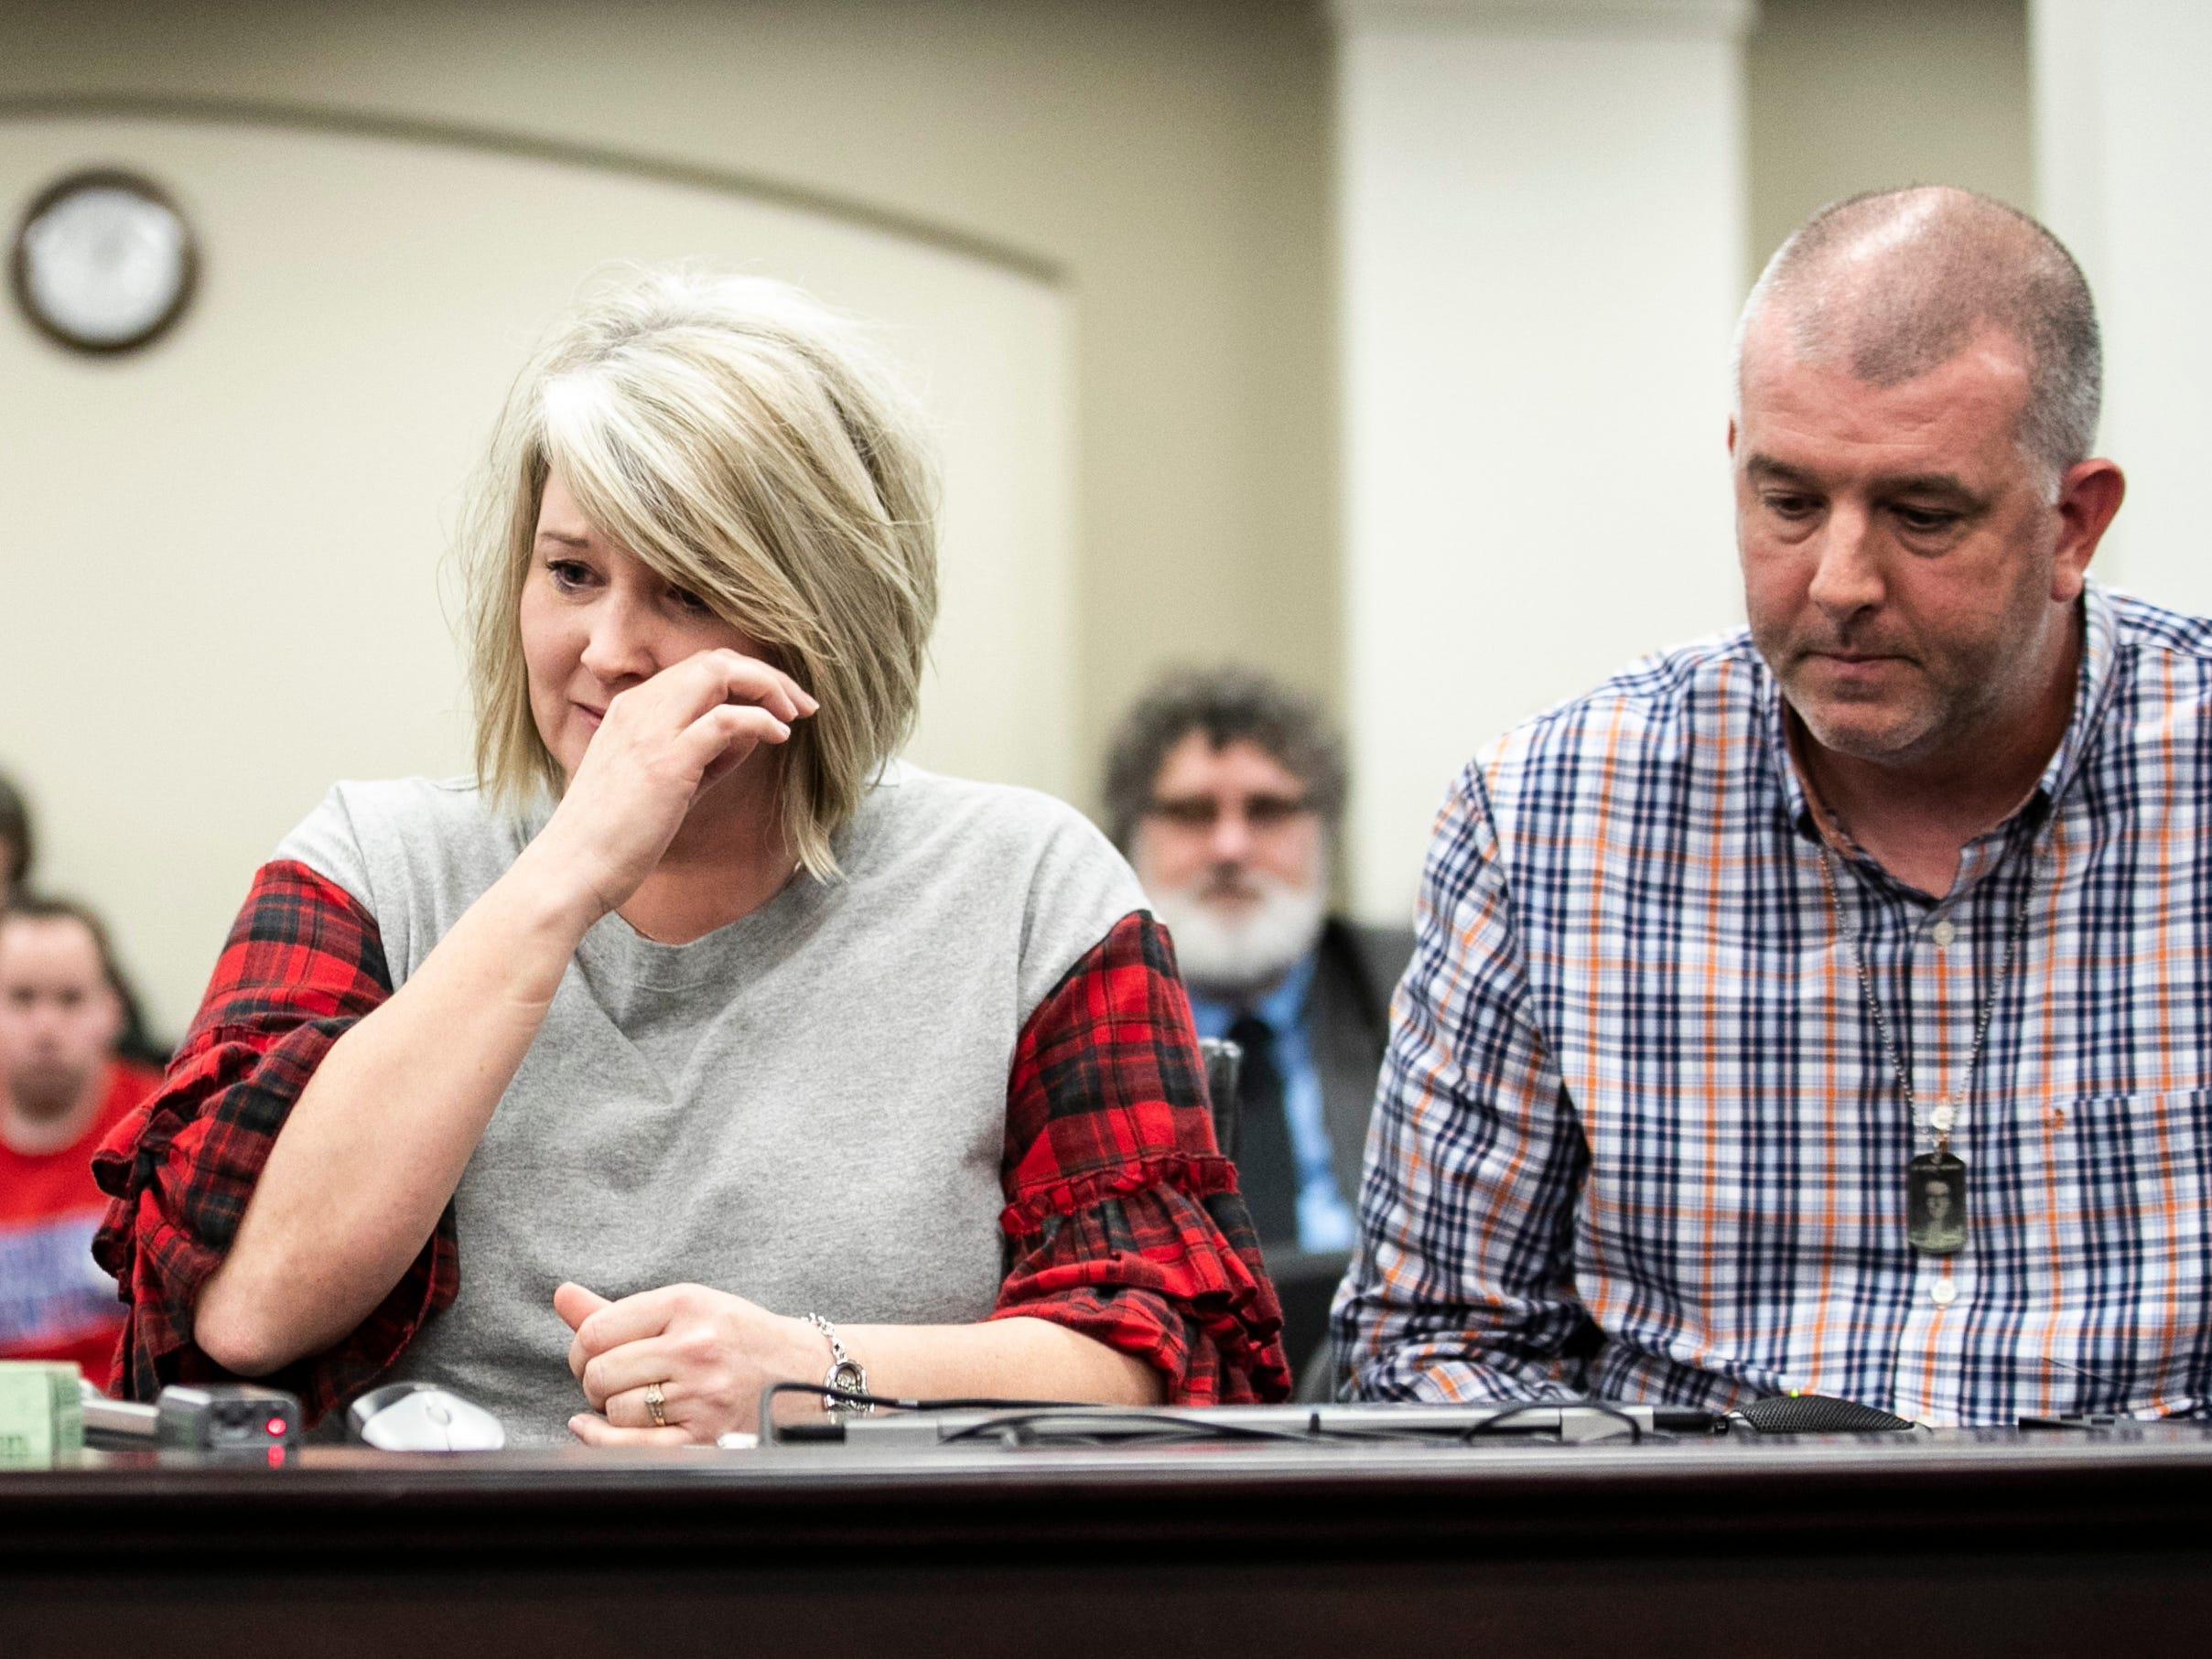 Secret Holt became emotional while urging lawmakers to pass SB 1, a school safety bill. Her daughter Bailey Holt was killed in the Marshall County High School shooting in 2018. At right is her husband and Bailey's father Jasen Holt. Feb. 7, 2019